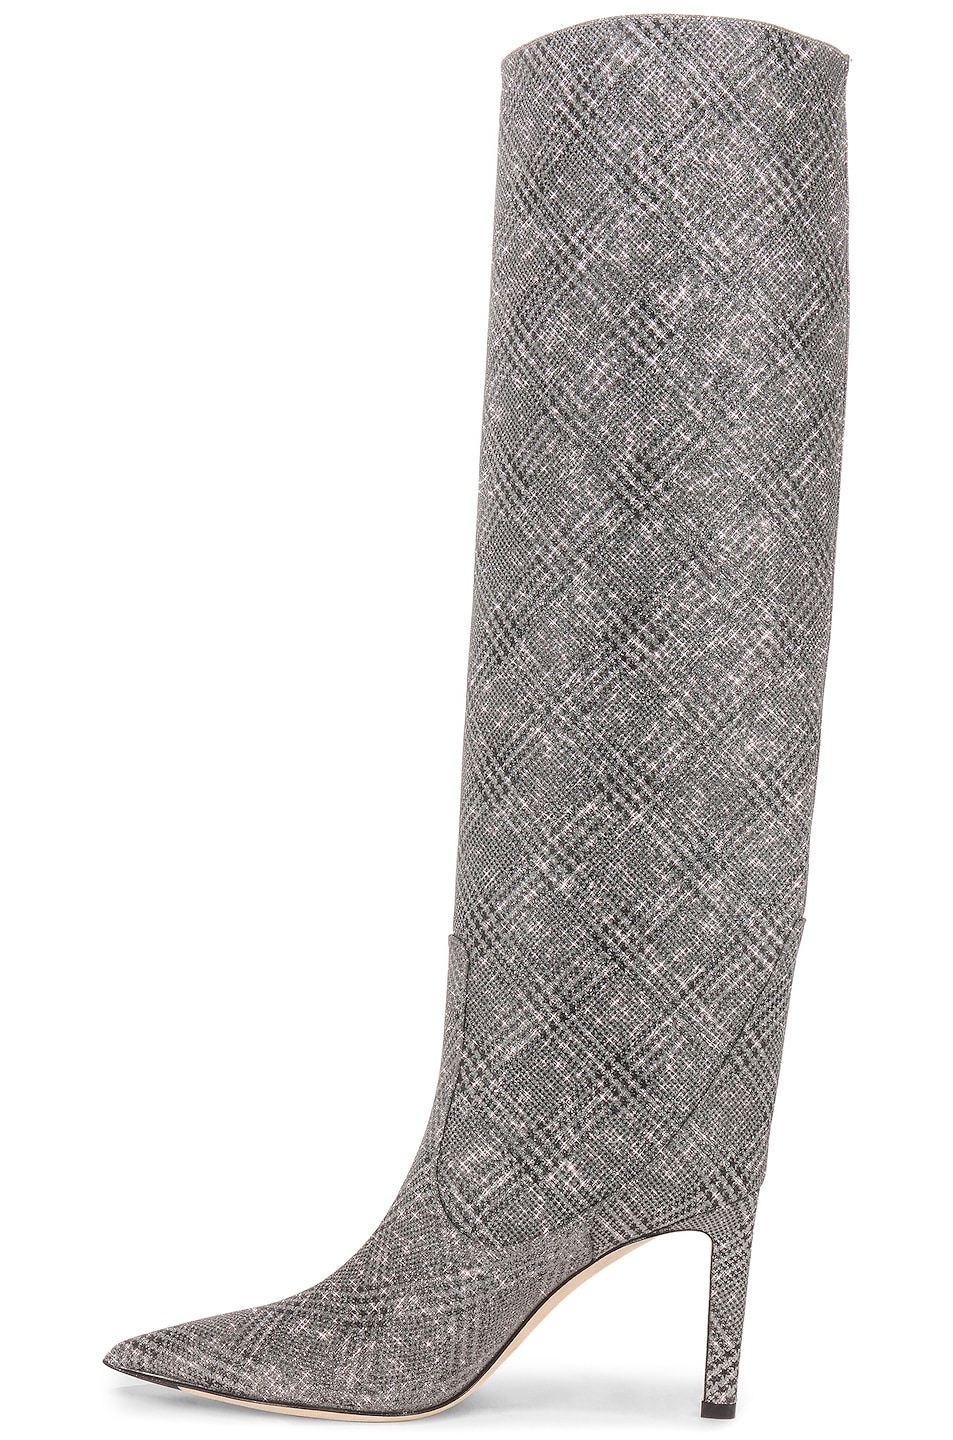 Image 6 of Jimmy Choo Mavis 85 Glitter Boots in Silver